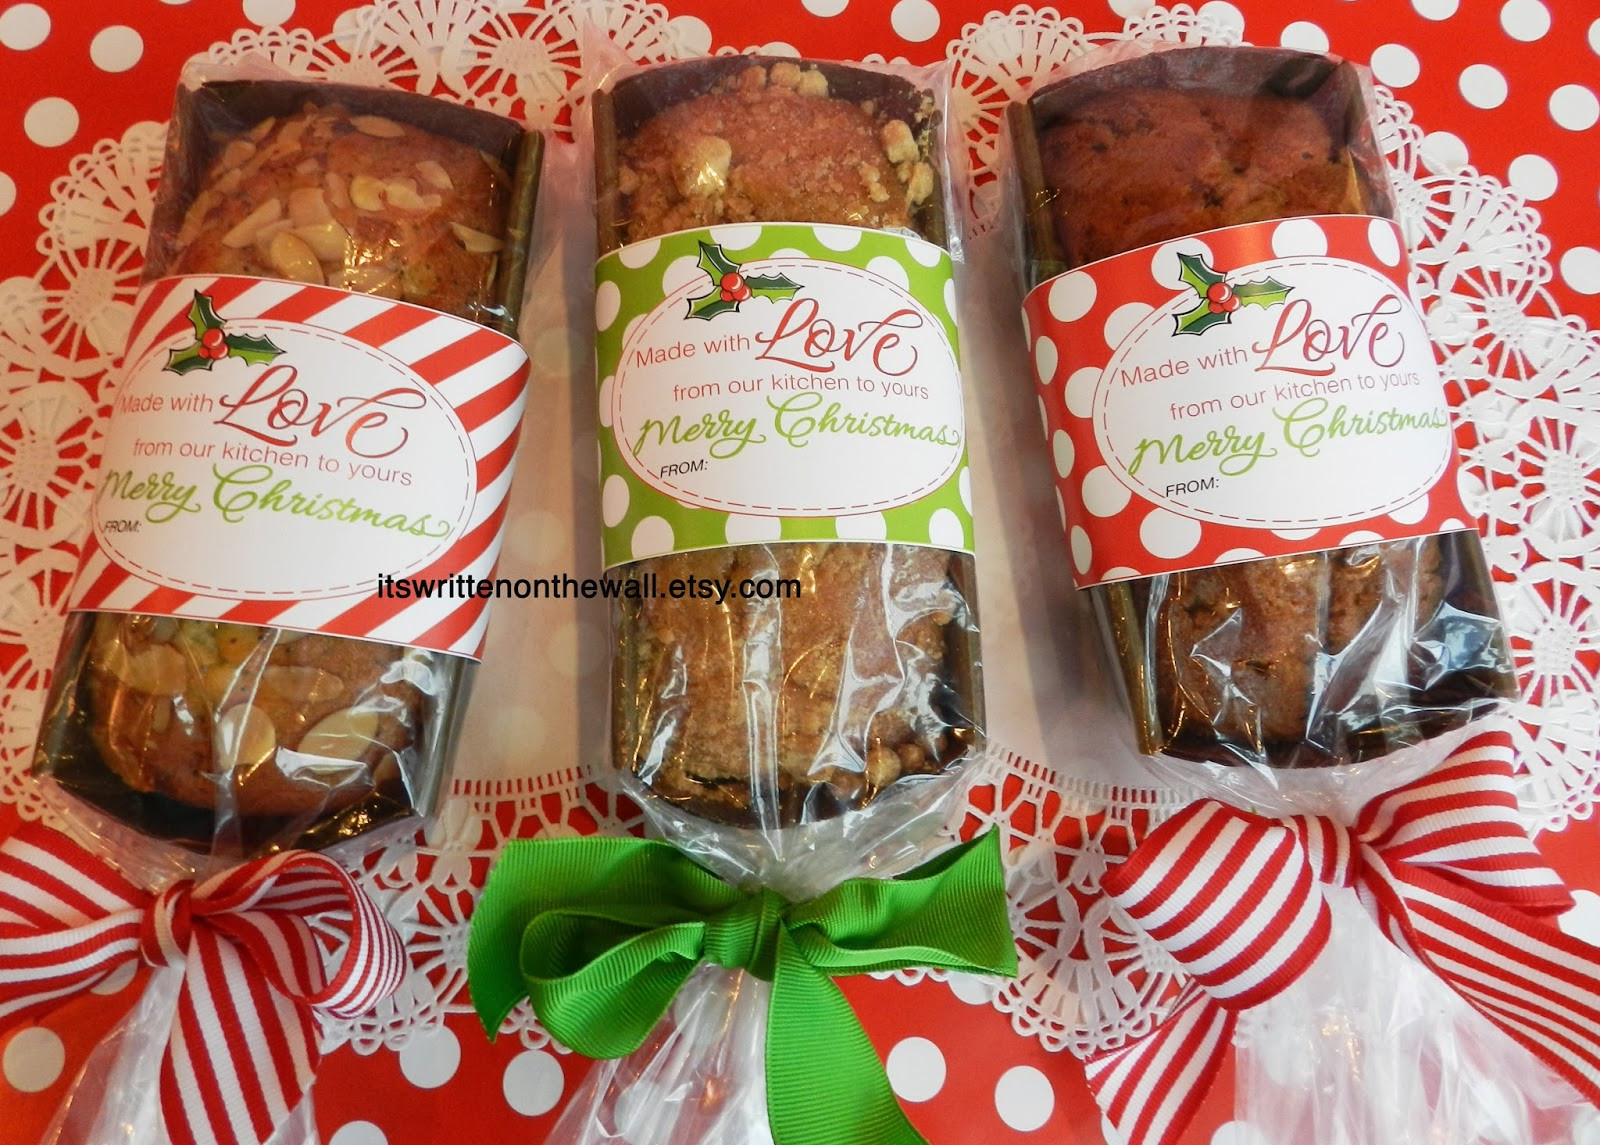 Best Food Gifts For Christmas  It s Written on the Wall 286 Neighbor Christmas Gift